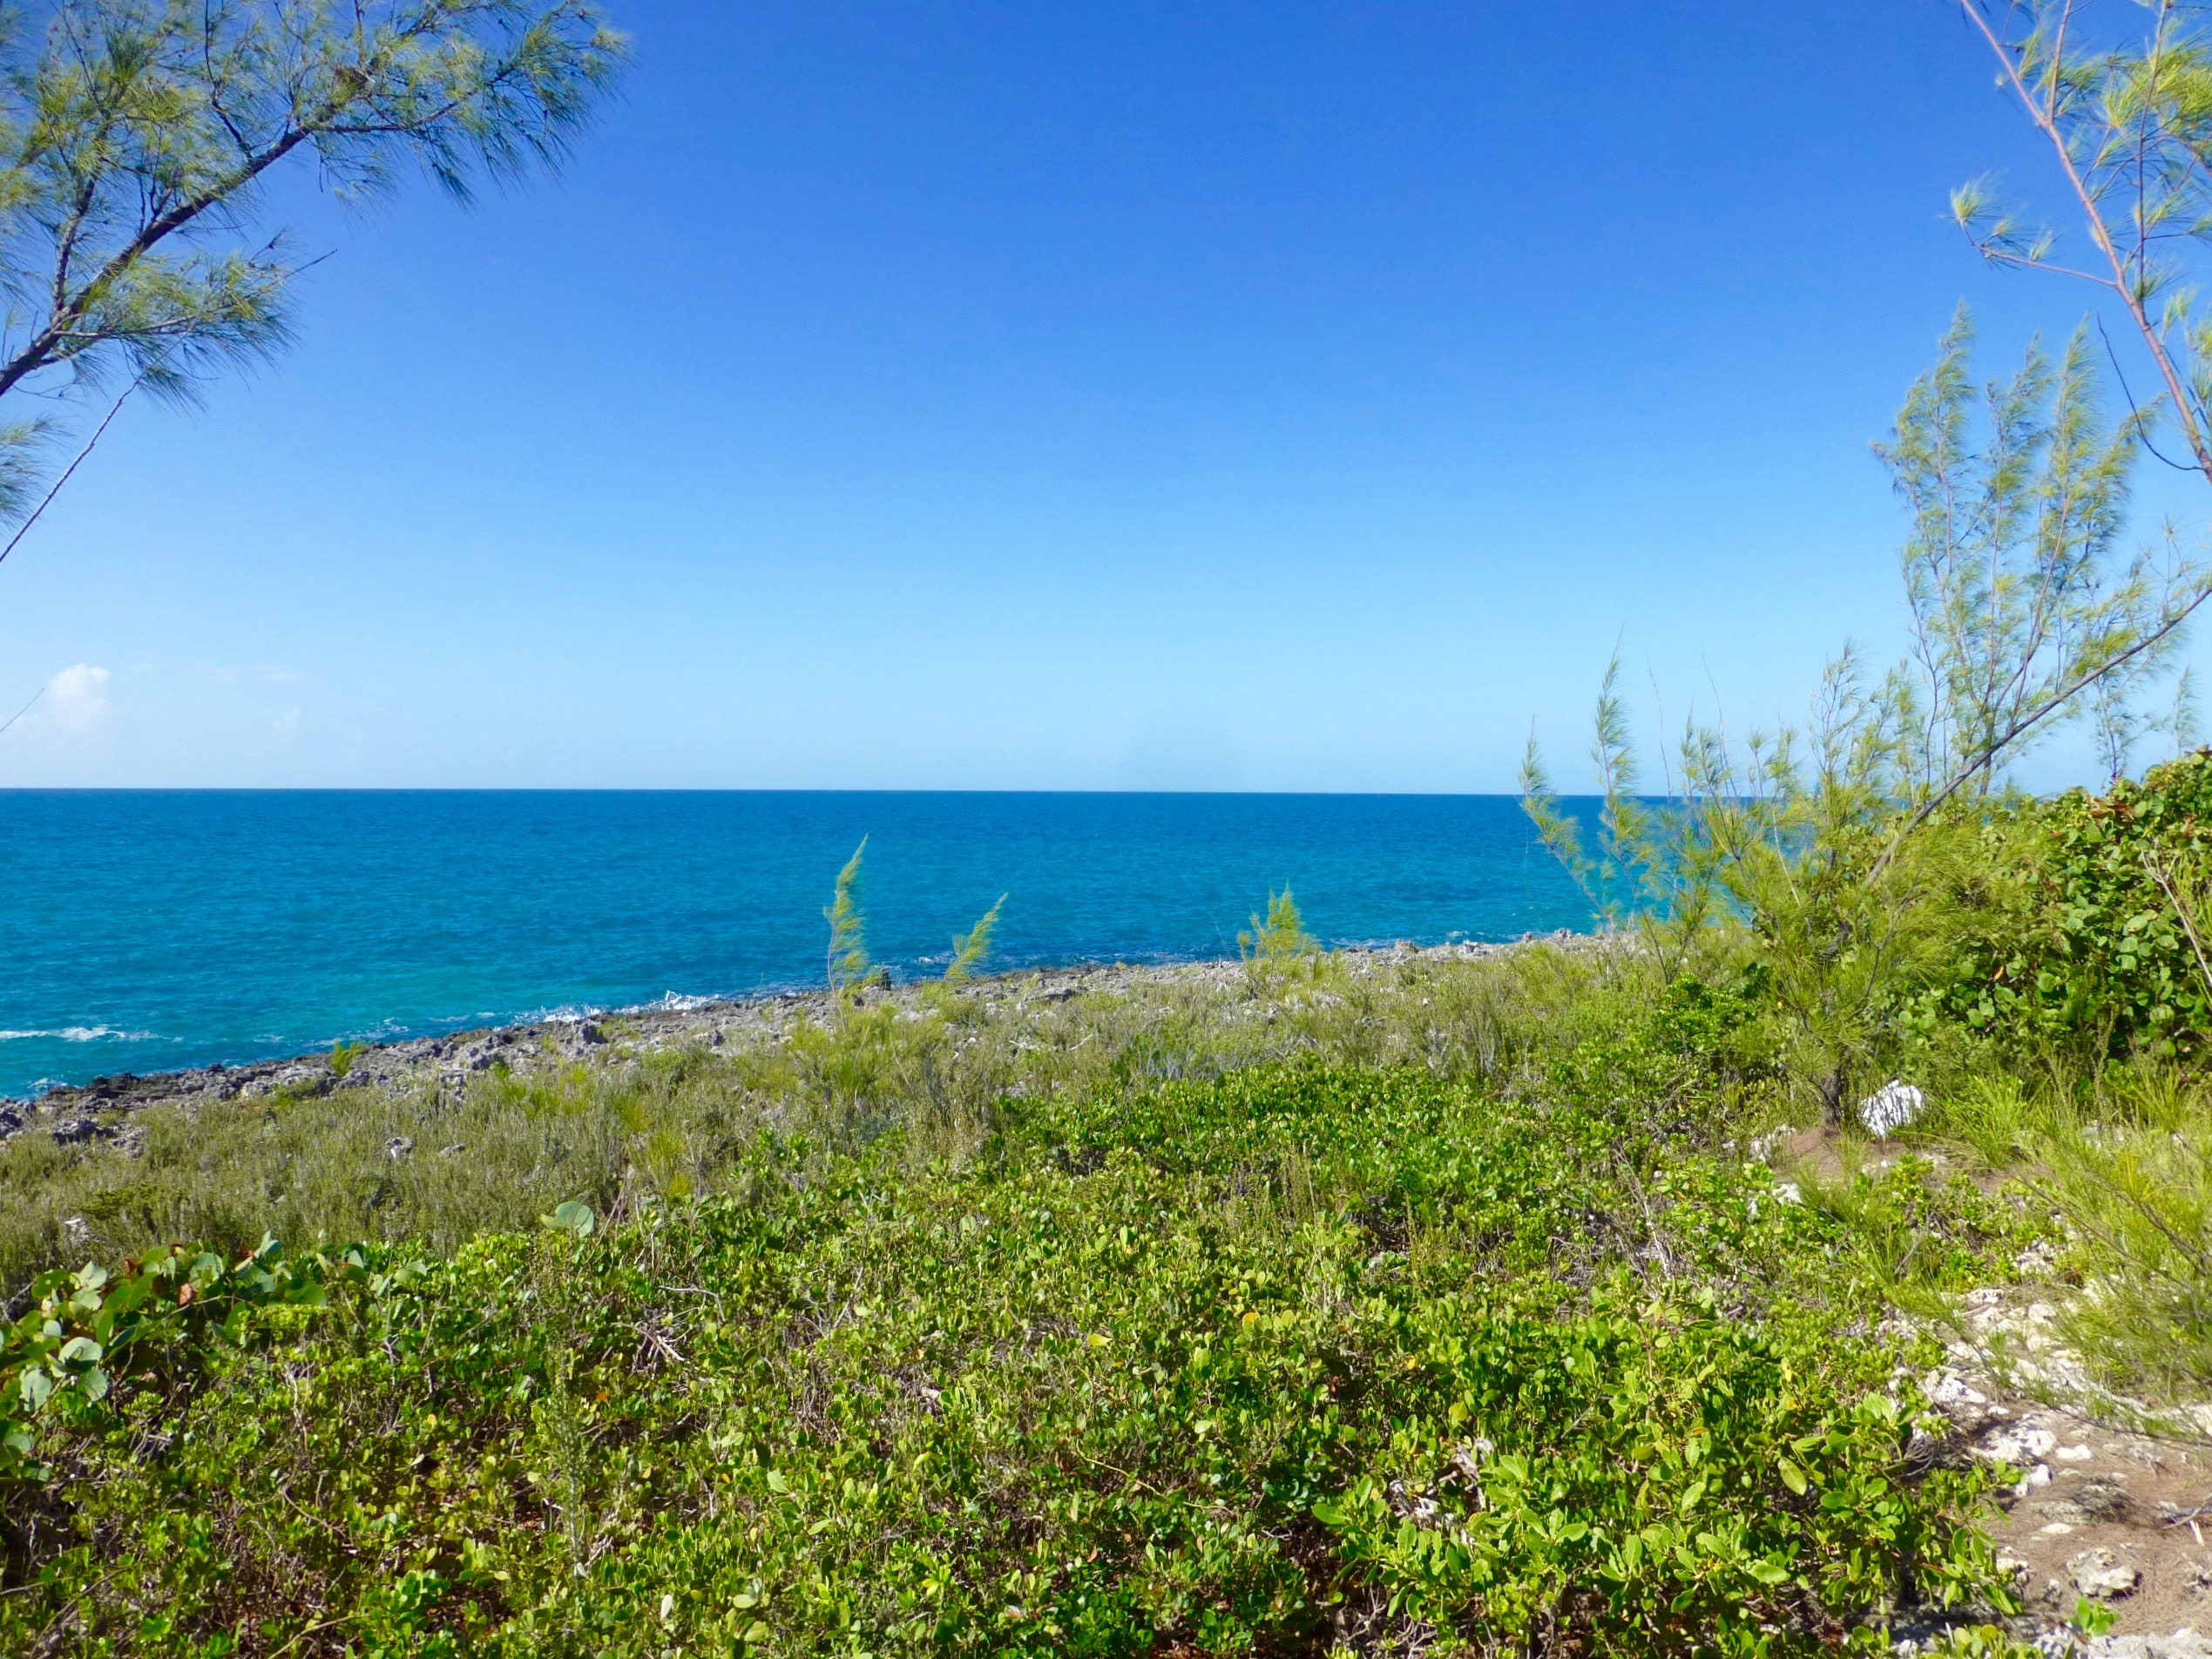 Terrain pour l Vente à Desired Waterfront Property in Rainbow Bay Rainbow Bay, Eleuthera Bahamas